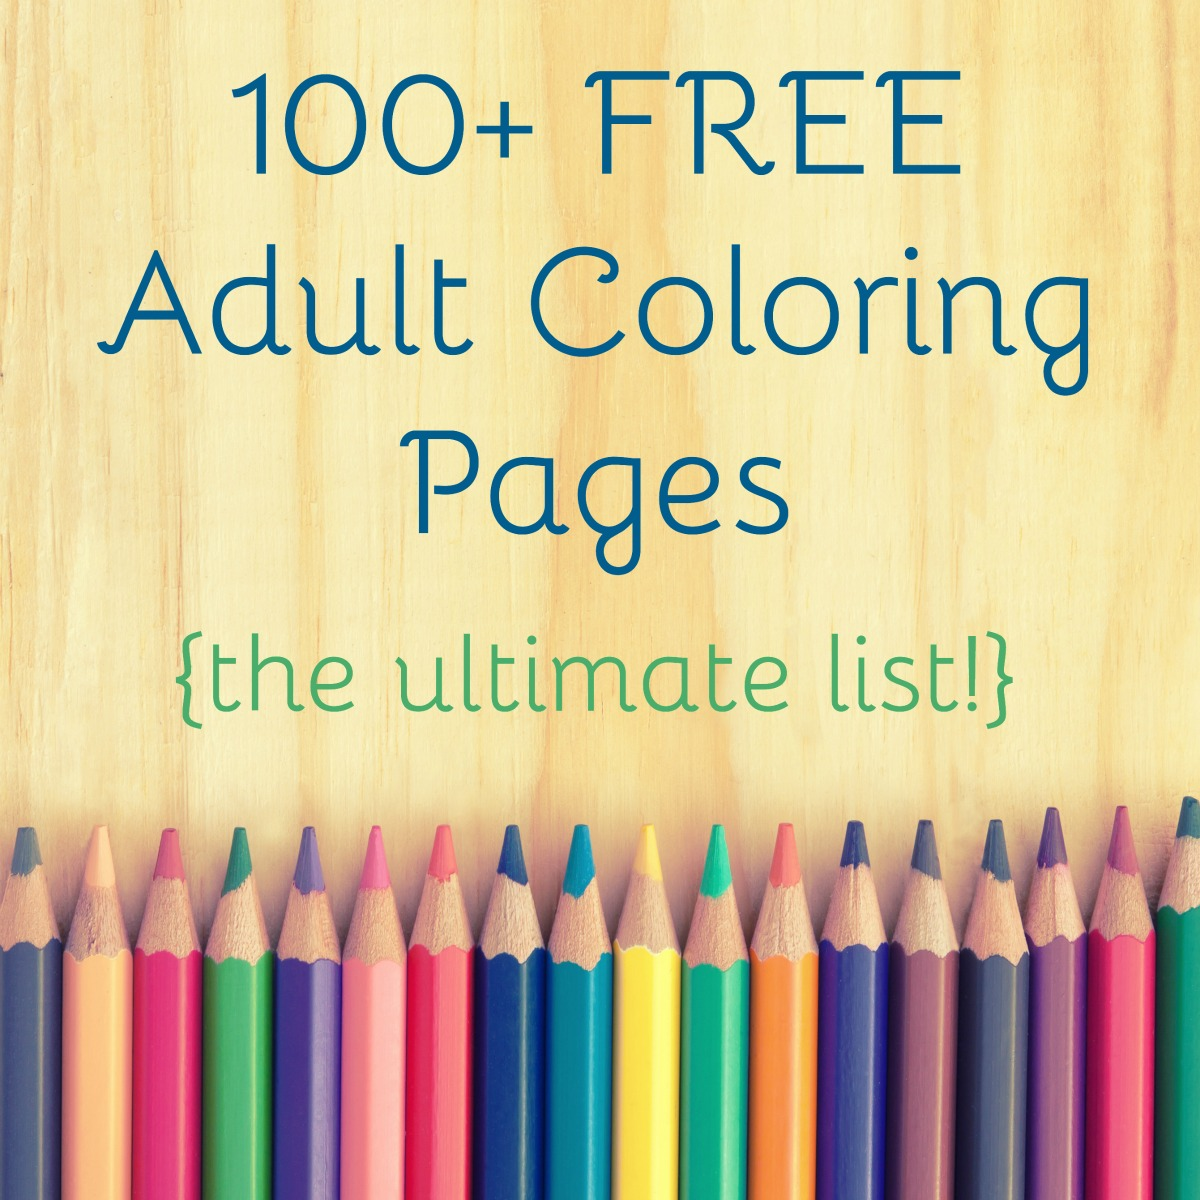 Free coloring pages adults printable - 100 Free Adult Coloring Pages